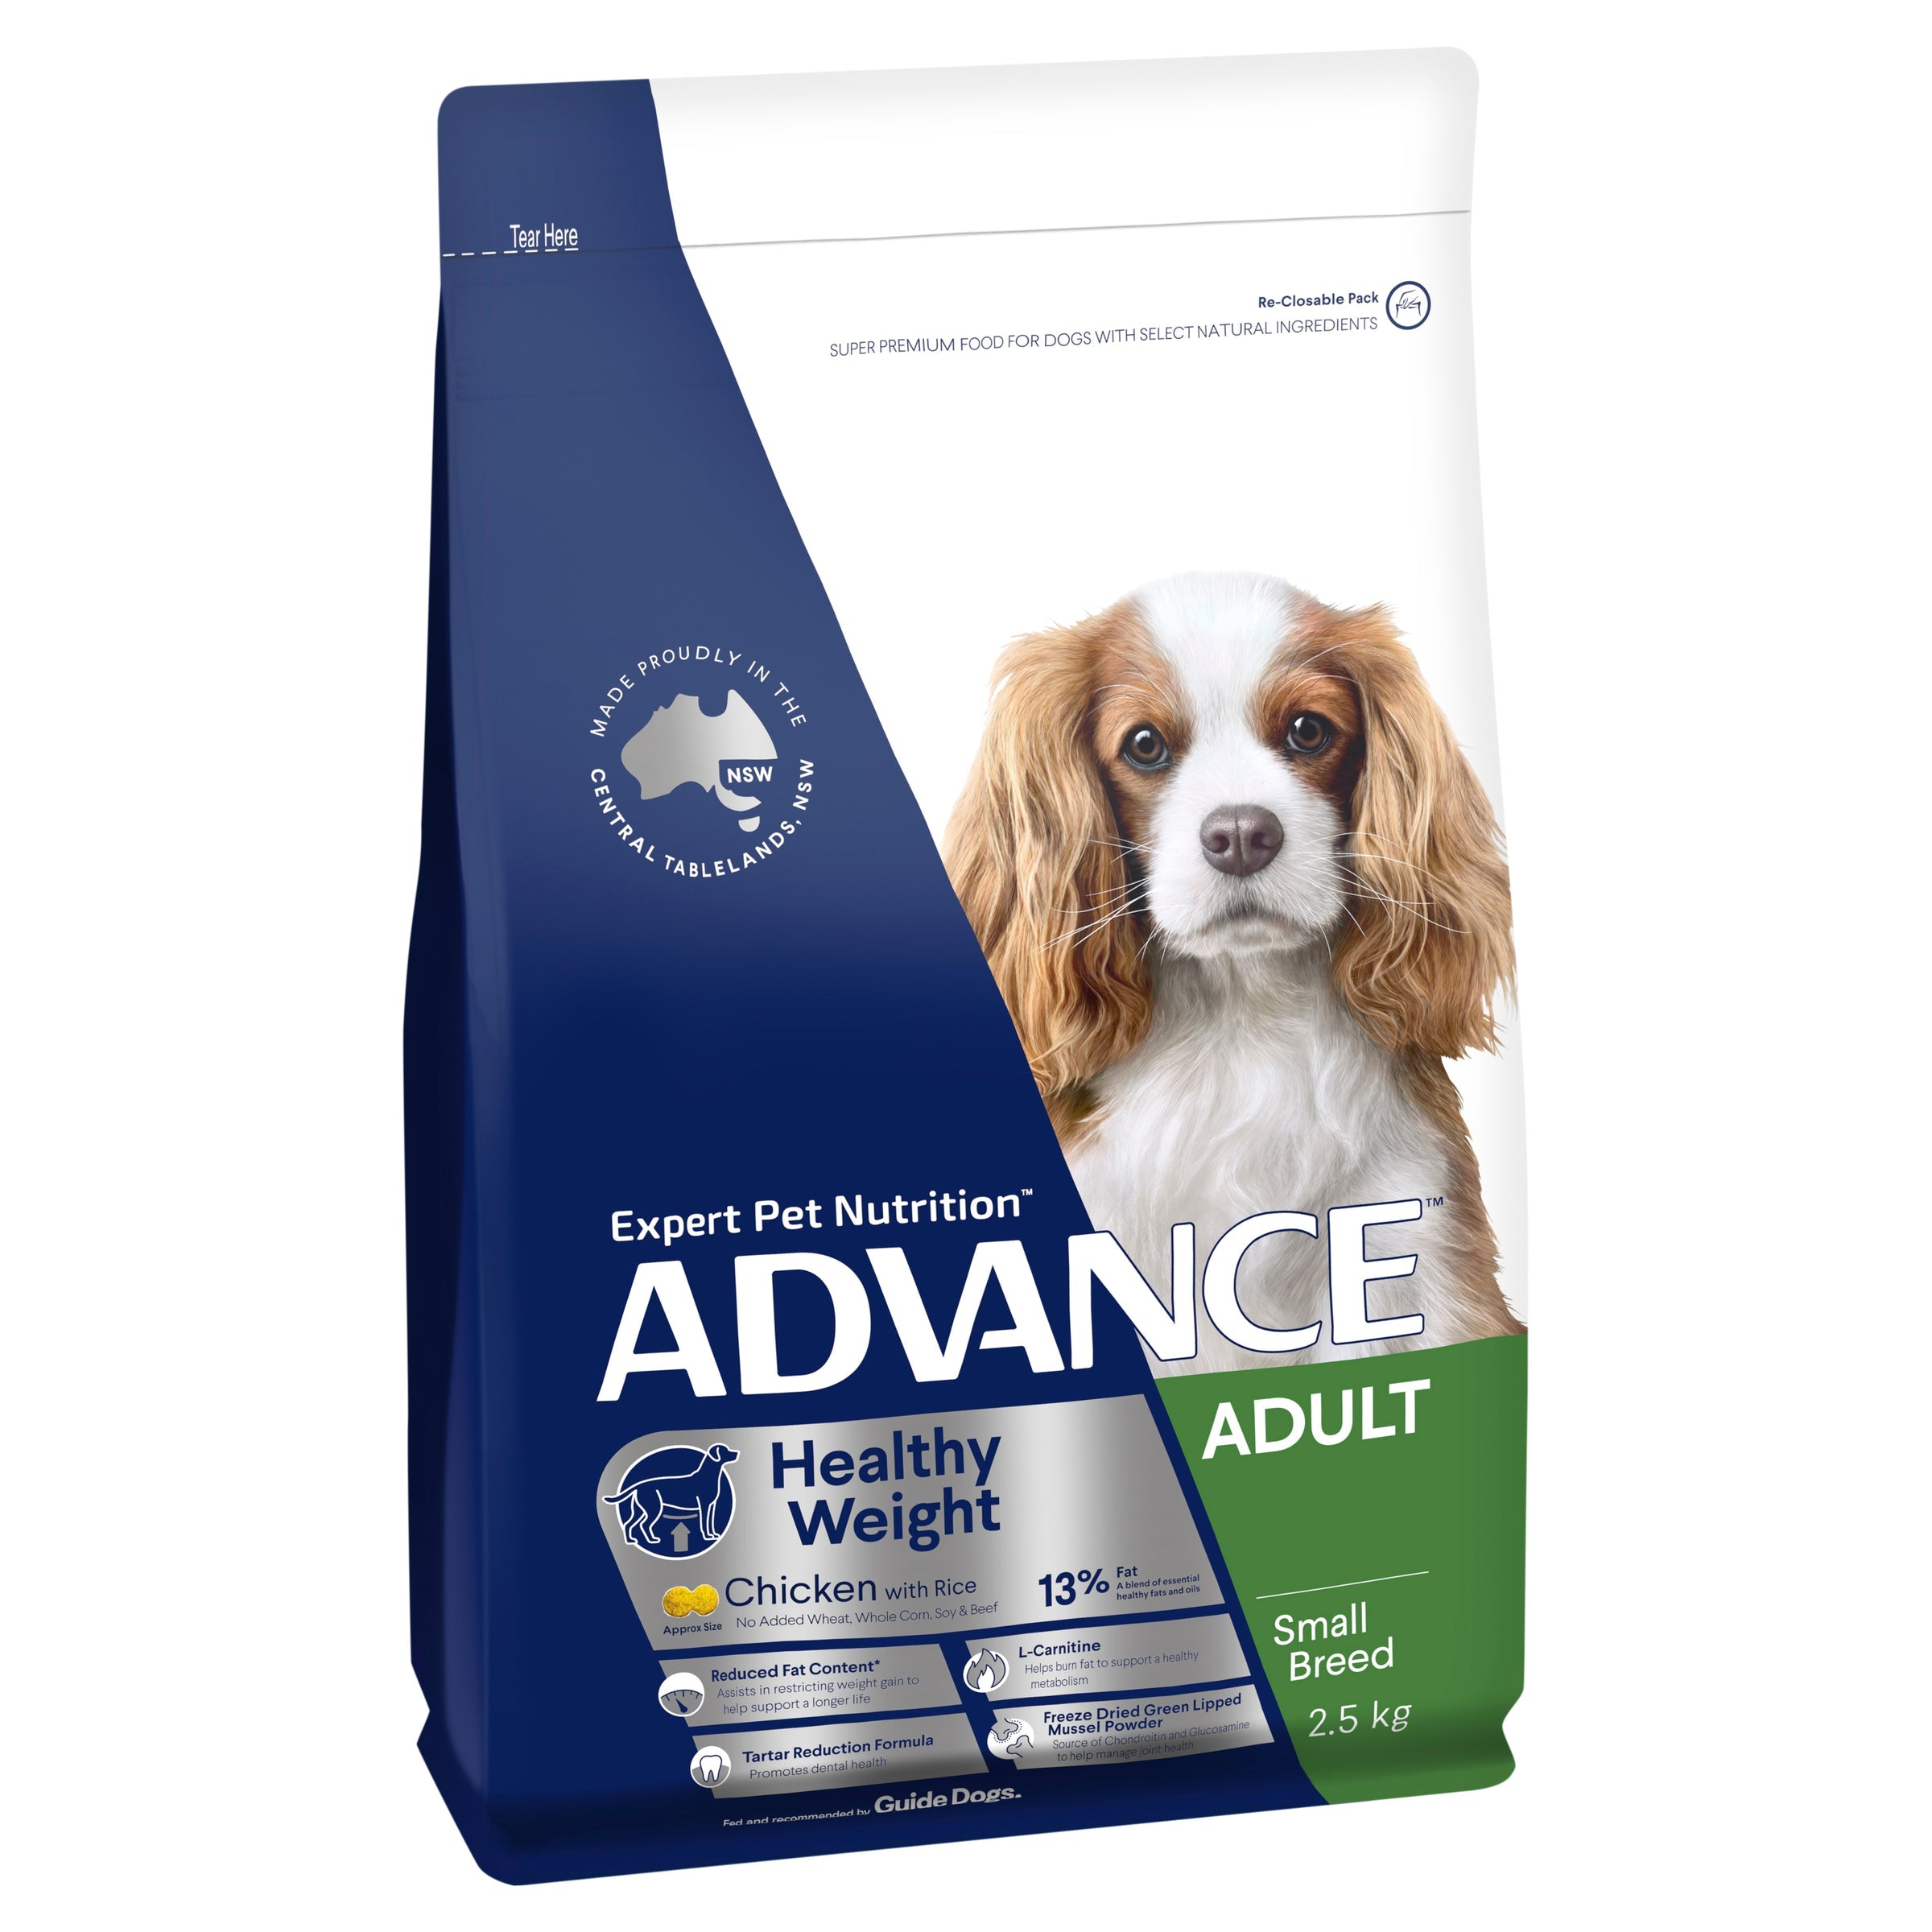 ADVANCE™ Healthy Weight Adult Small Breed Chicken with Rice Dry Dog Food 2.5kg